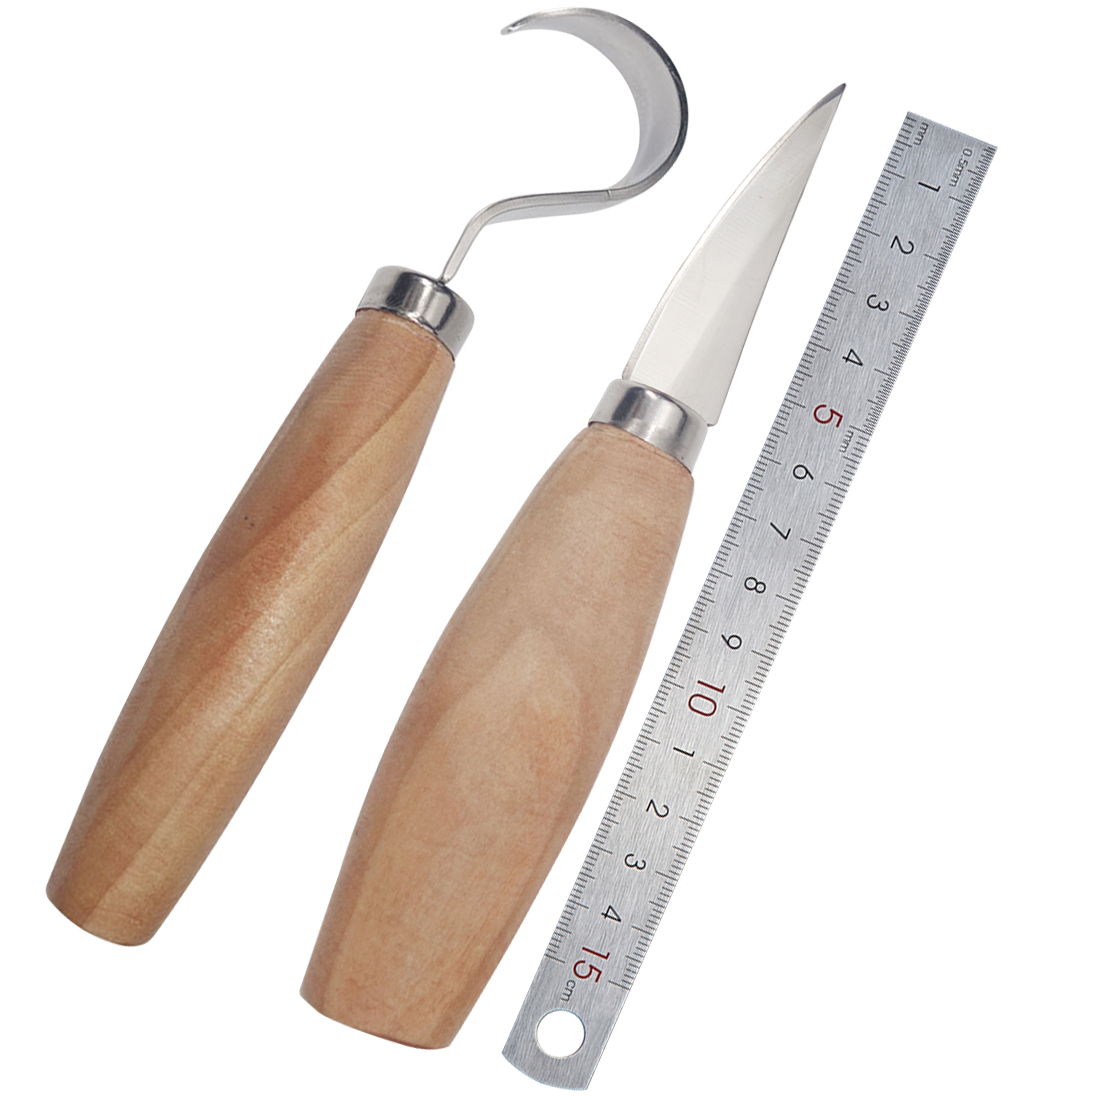 2pcs/set Stainless Steel Woodcarving Cutter Woodwork Sculptural DIY Wood Handle Spoon Carving Knife Woodcut Tools Kit2pcs/set Stainless Steel Woodcarving Cutter Woodwork Sculptural DIY Wood Handle Spoon Carving Knife Woodcut Tools Kit